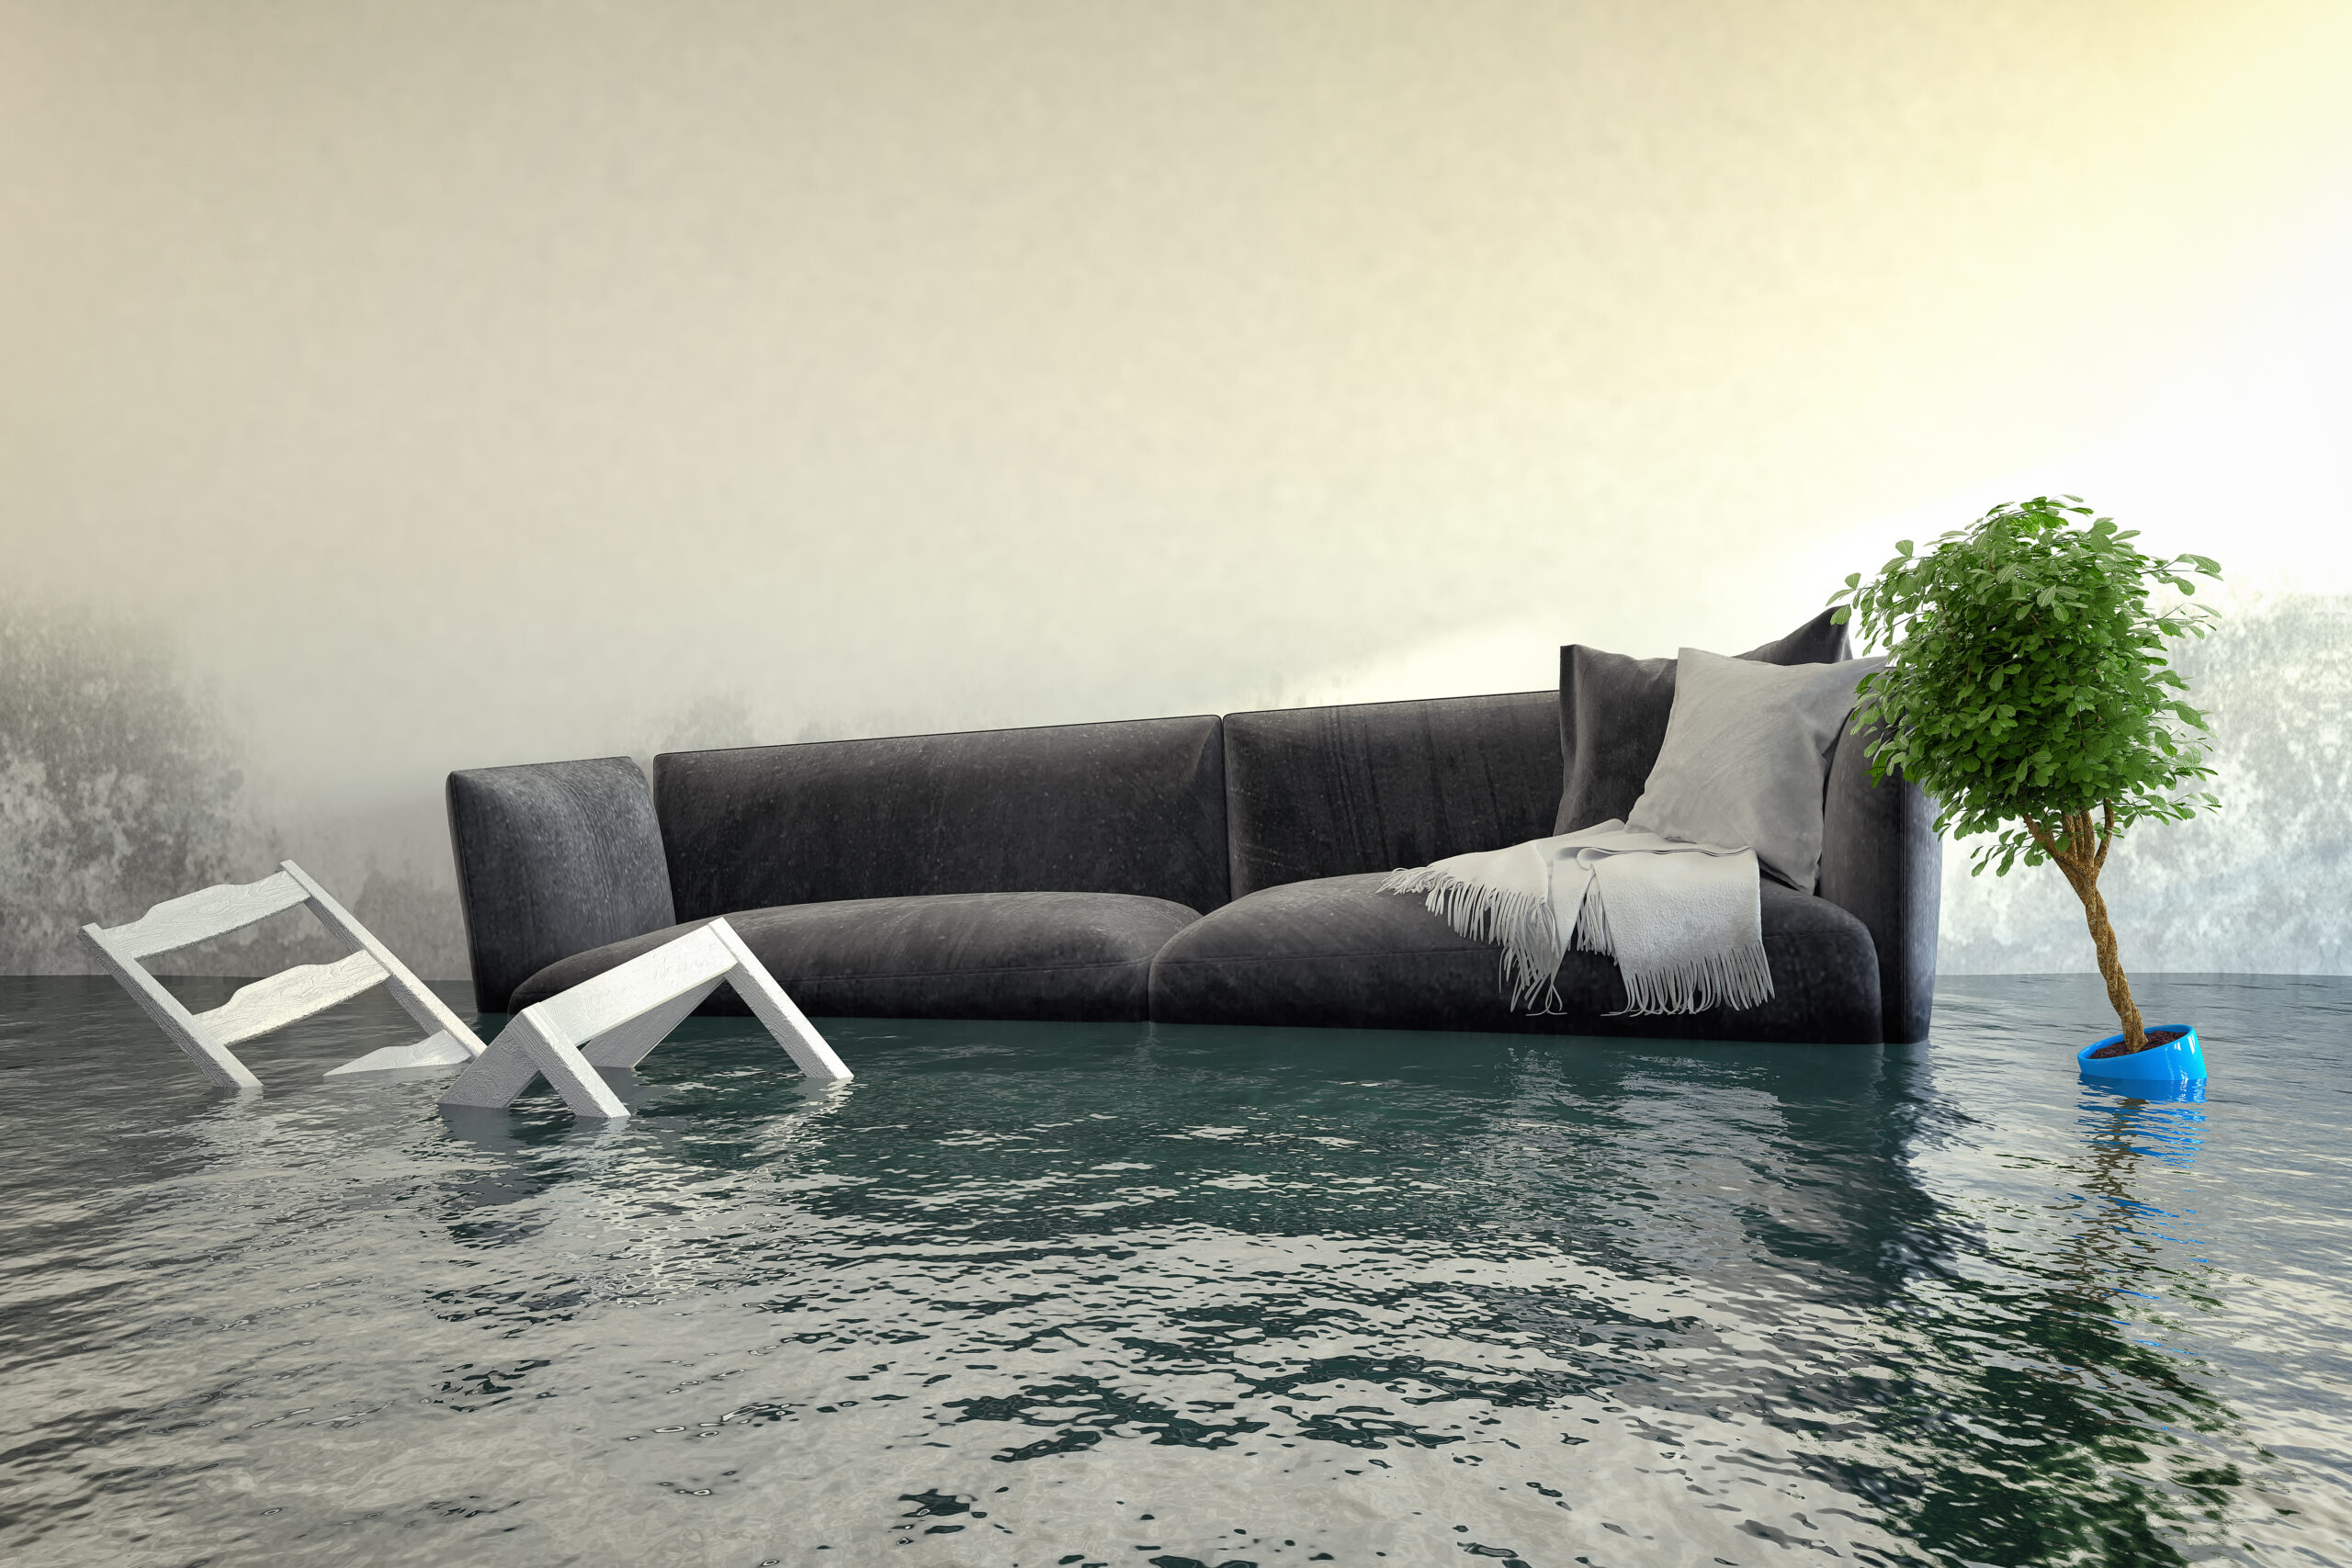 furniture floating in water